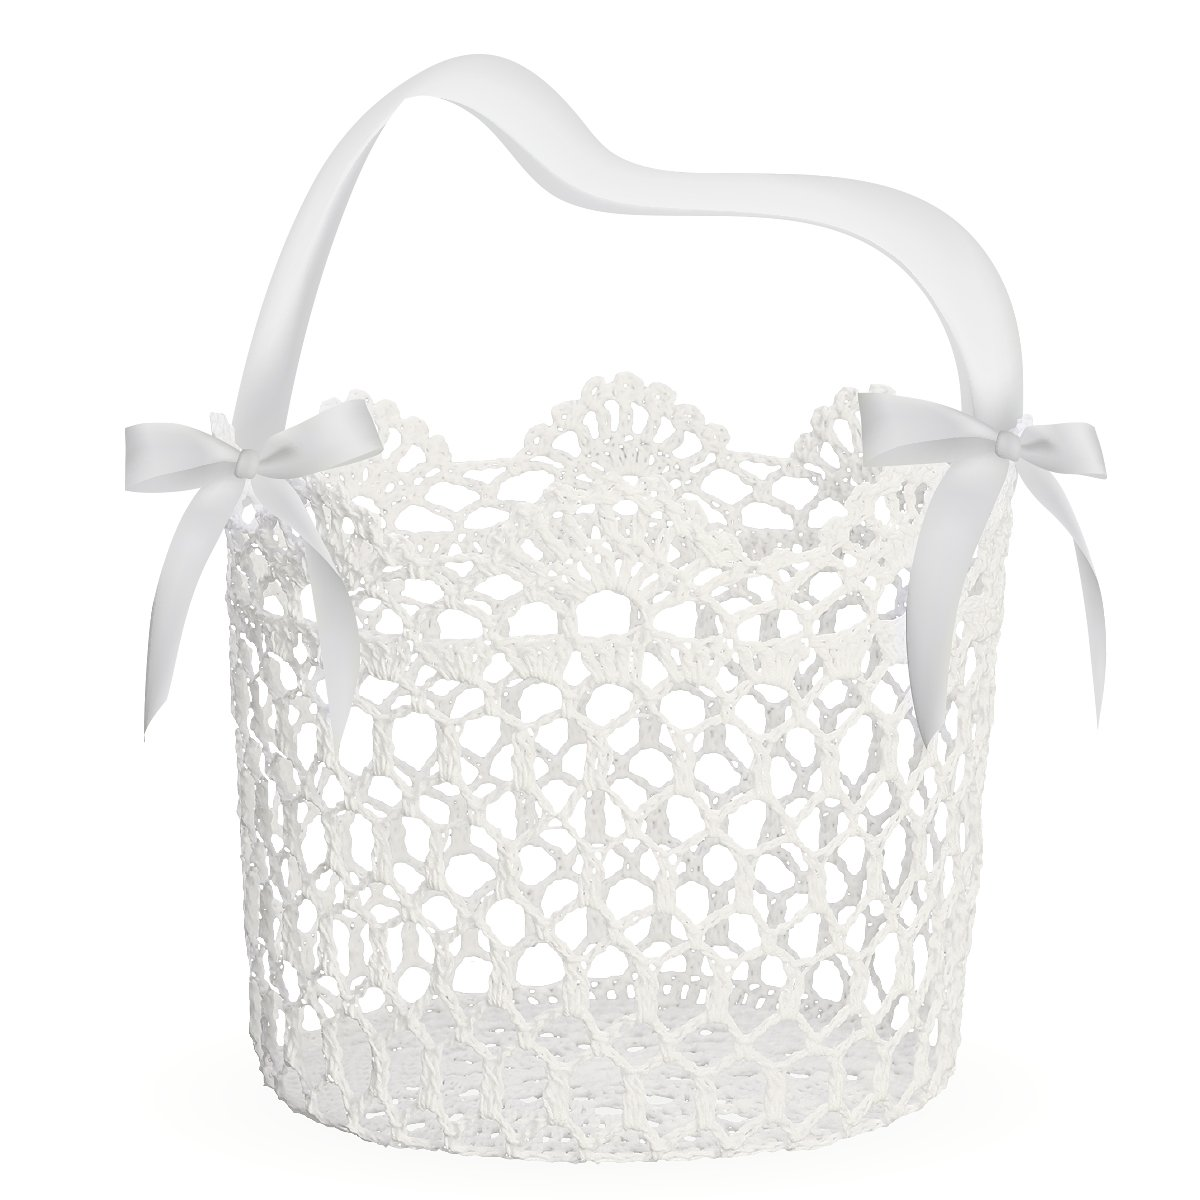 Unomor Flower Girl Basket for Wedding Decoration, Handle with Silk Ribbon,5x5x5Inch(White) by Unomor